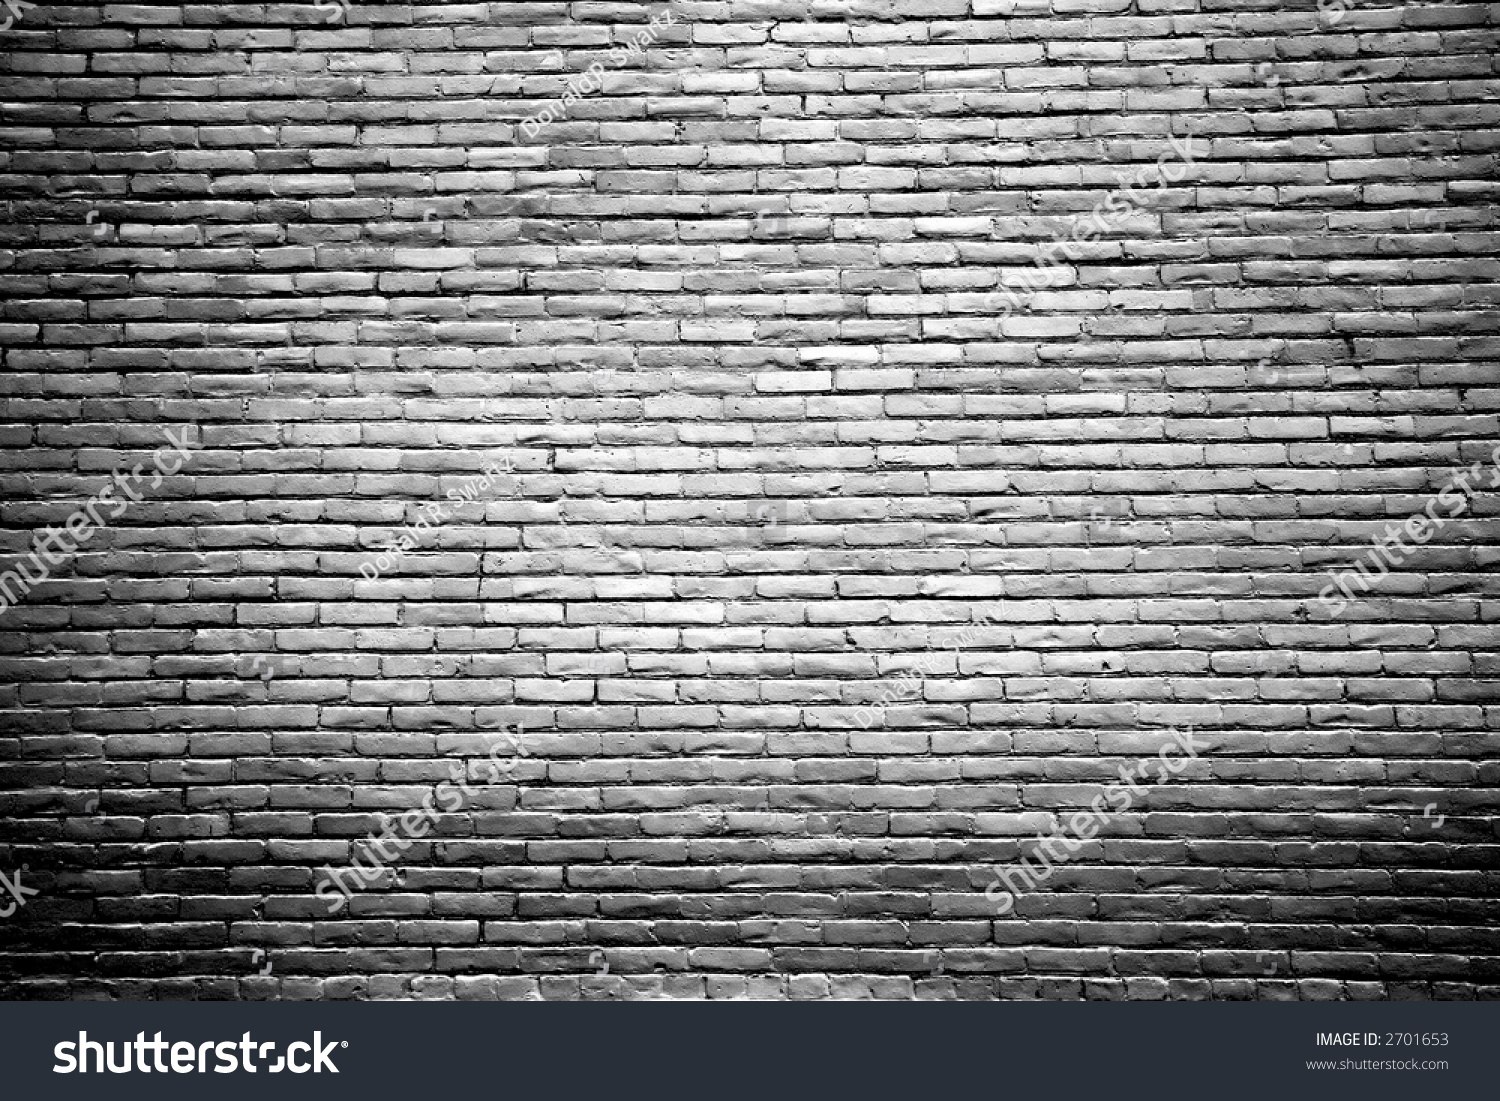 Black And White Brick Wall Background With Highlighted